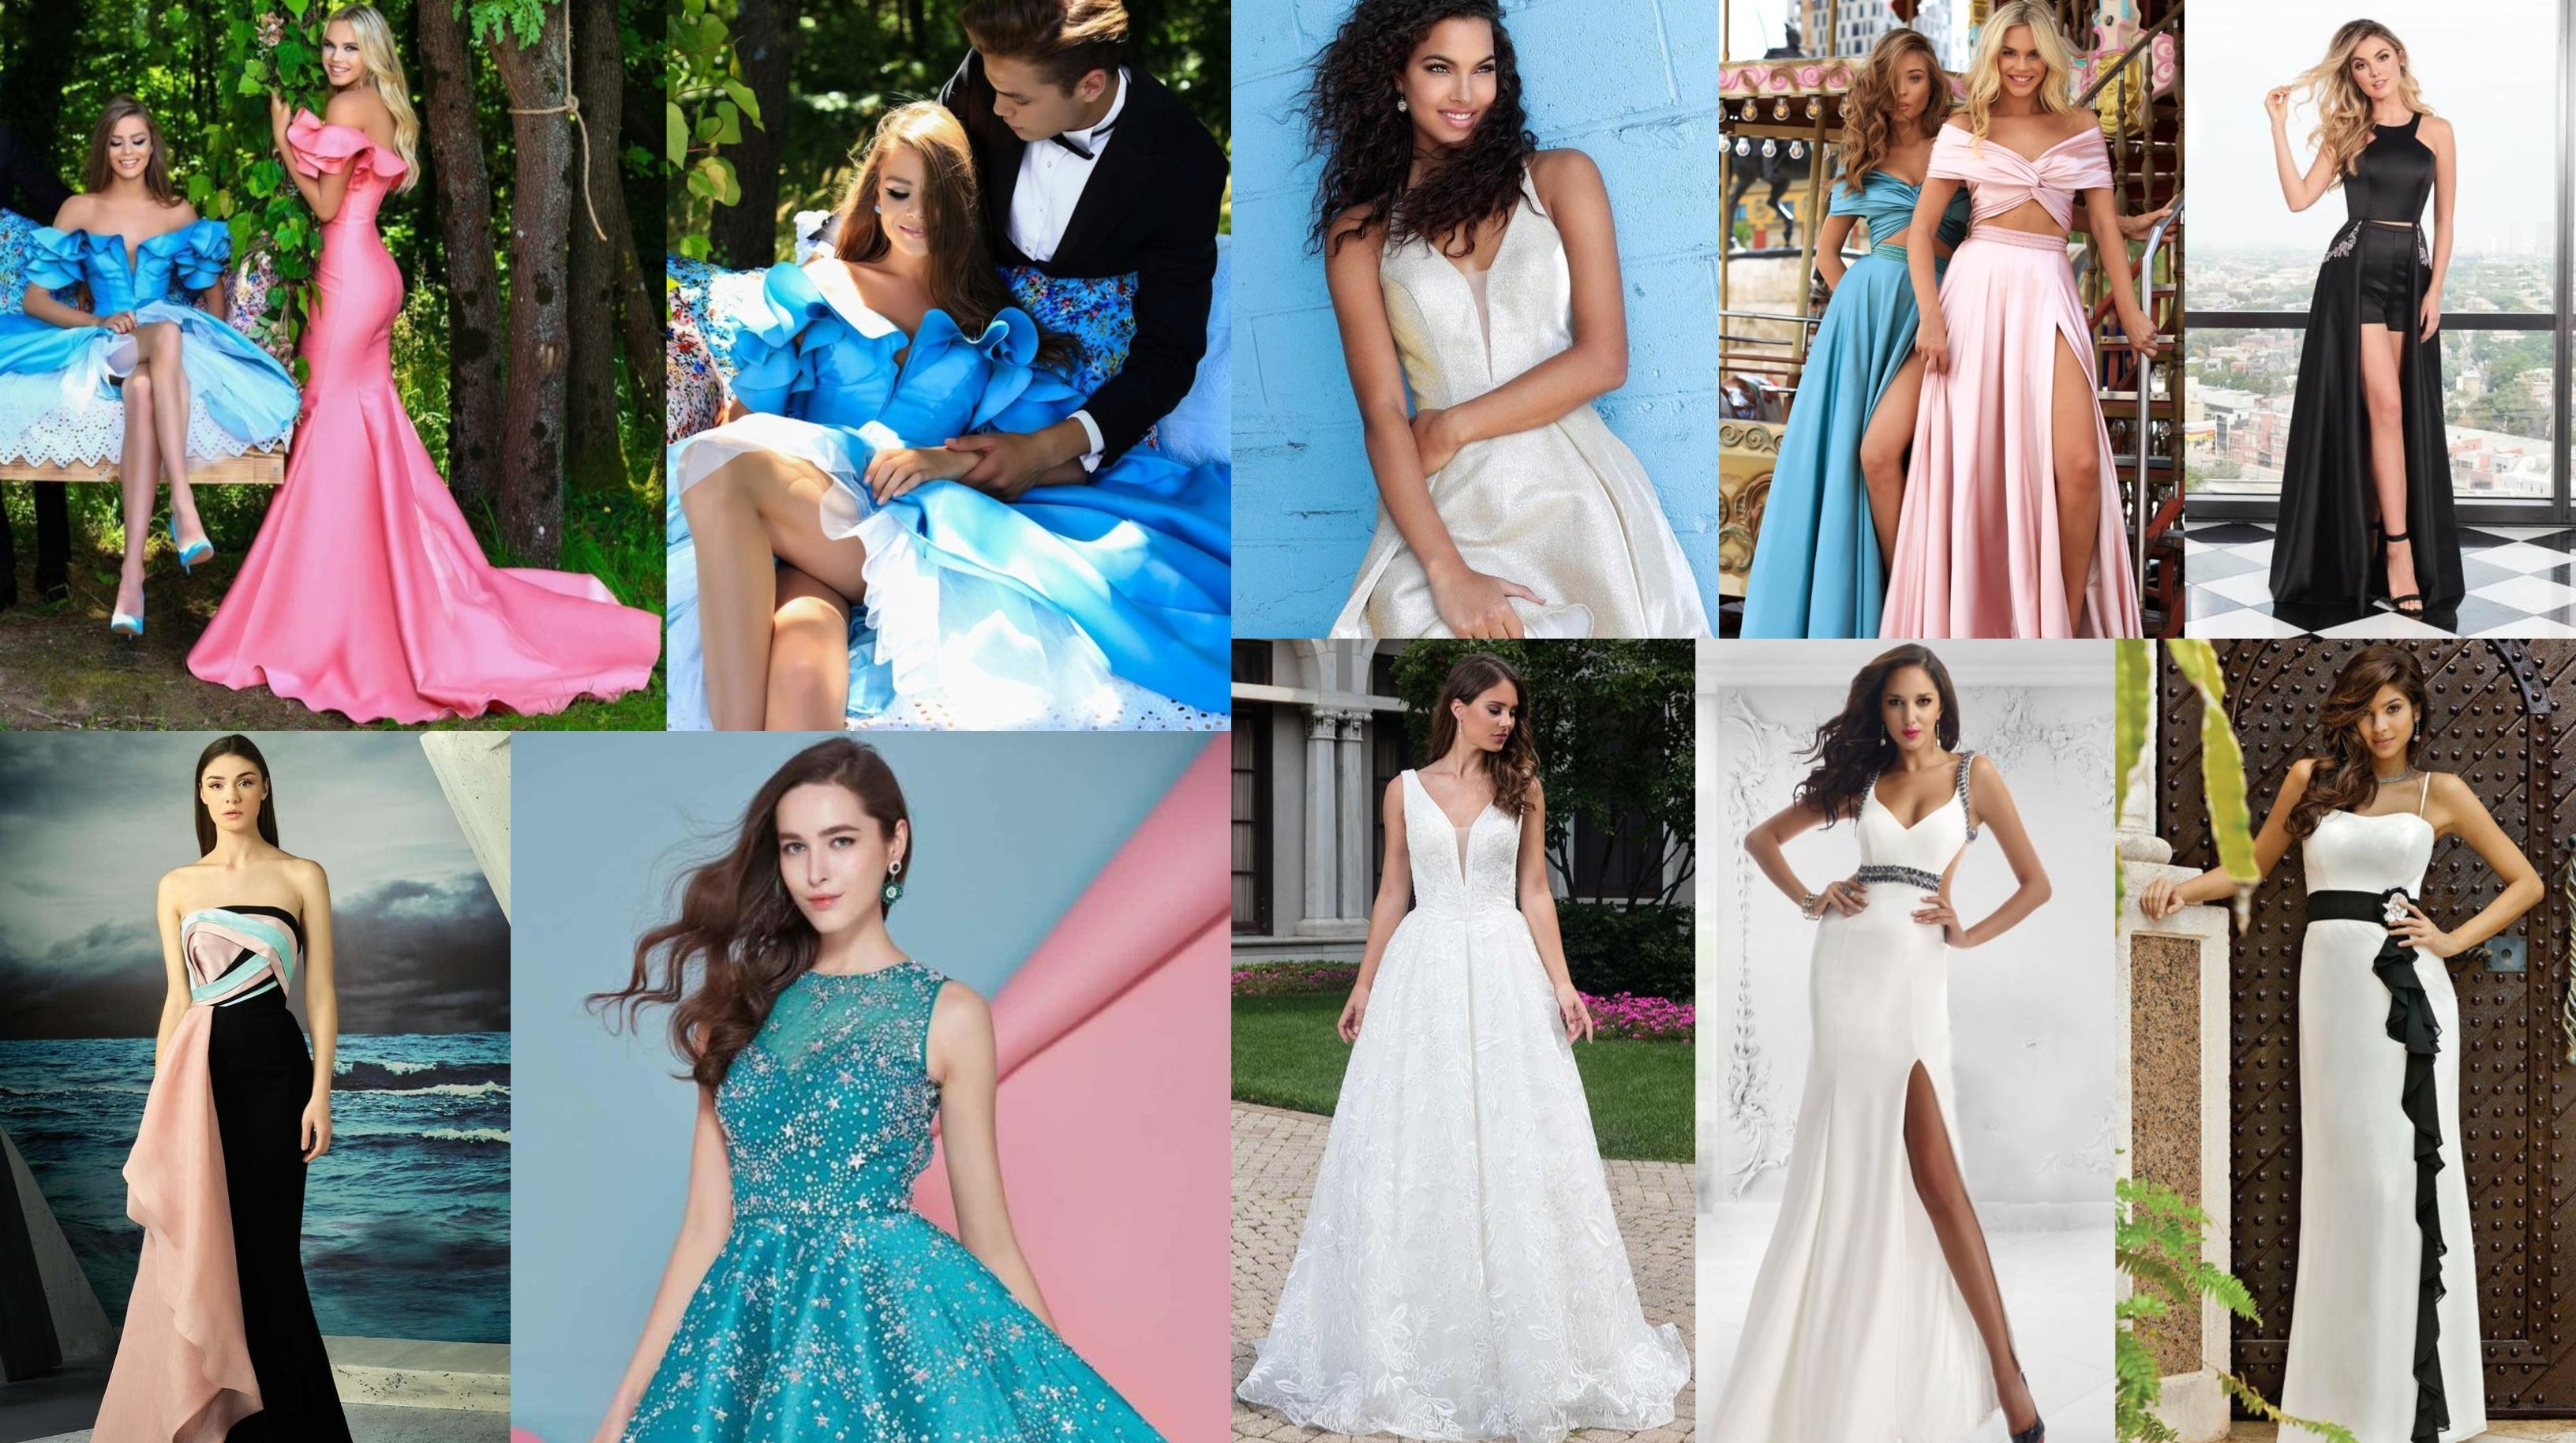 Check Out The Sexy Prom Dresses 2019 To Look Beautiful!!